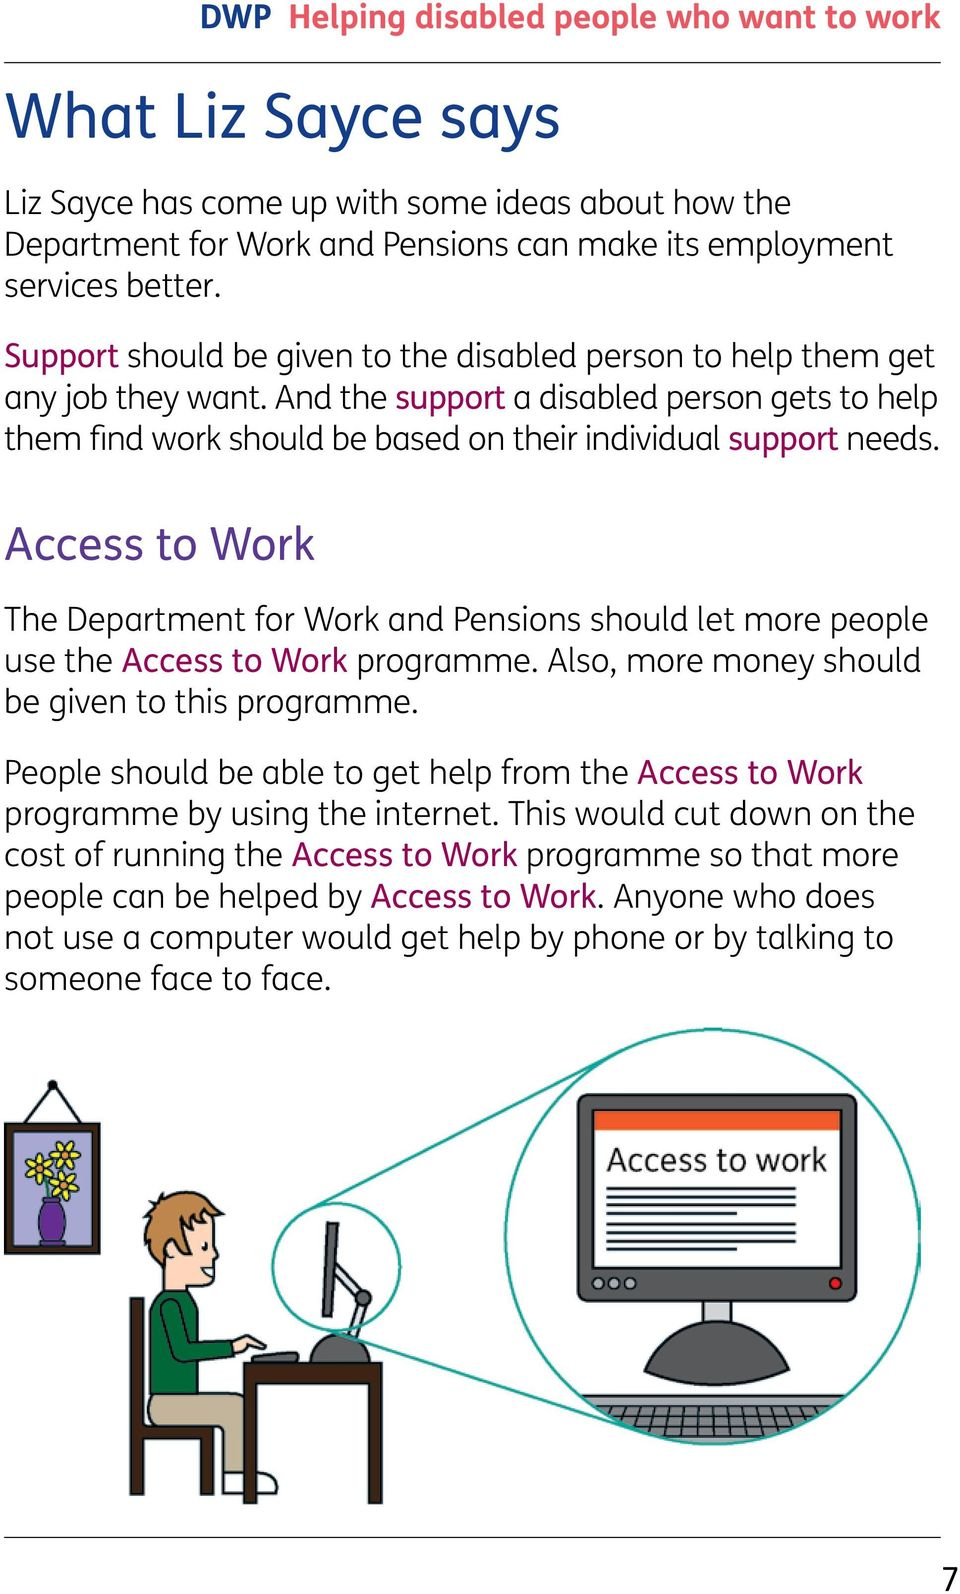 Access to Work The Department for Work and Pensions should let more people use the Access to Work programme. Also, more money should be given to this programme.